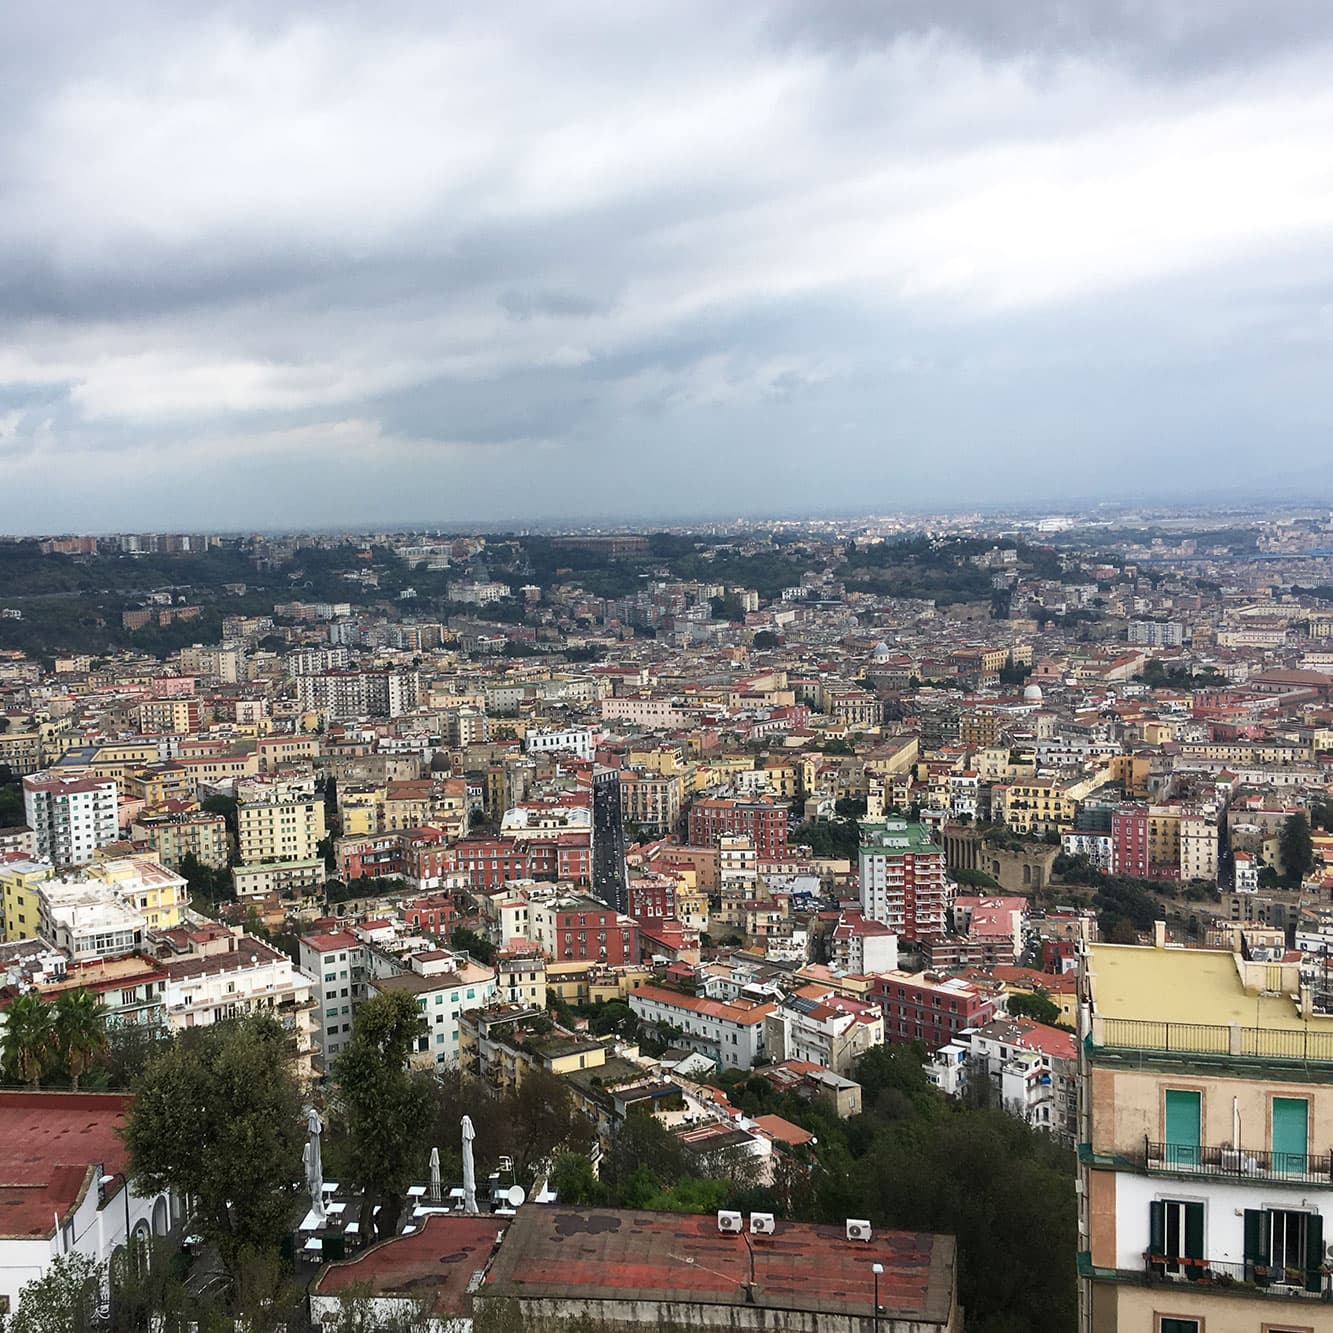 Looking over Naples from Castel Sant'Elmo